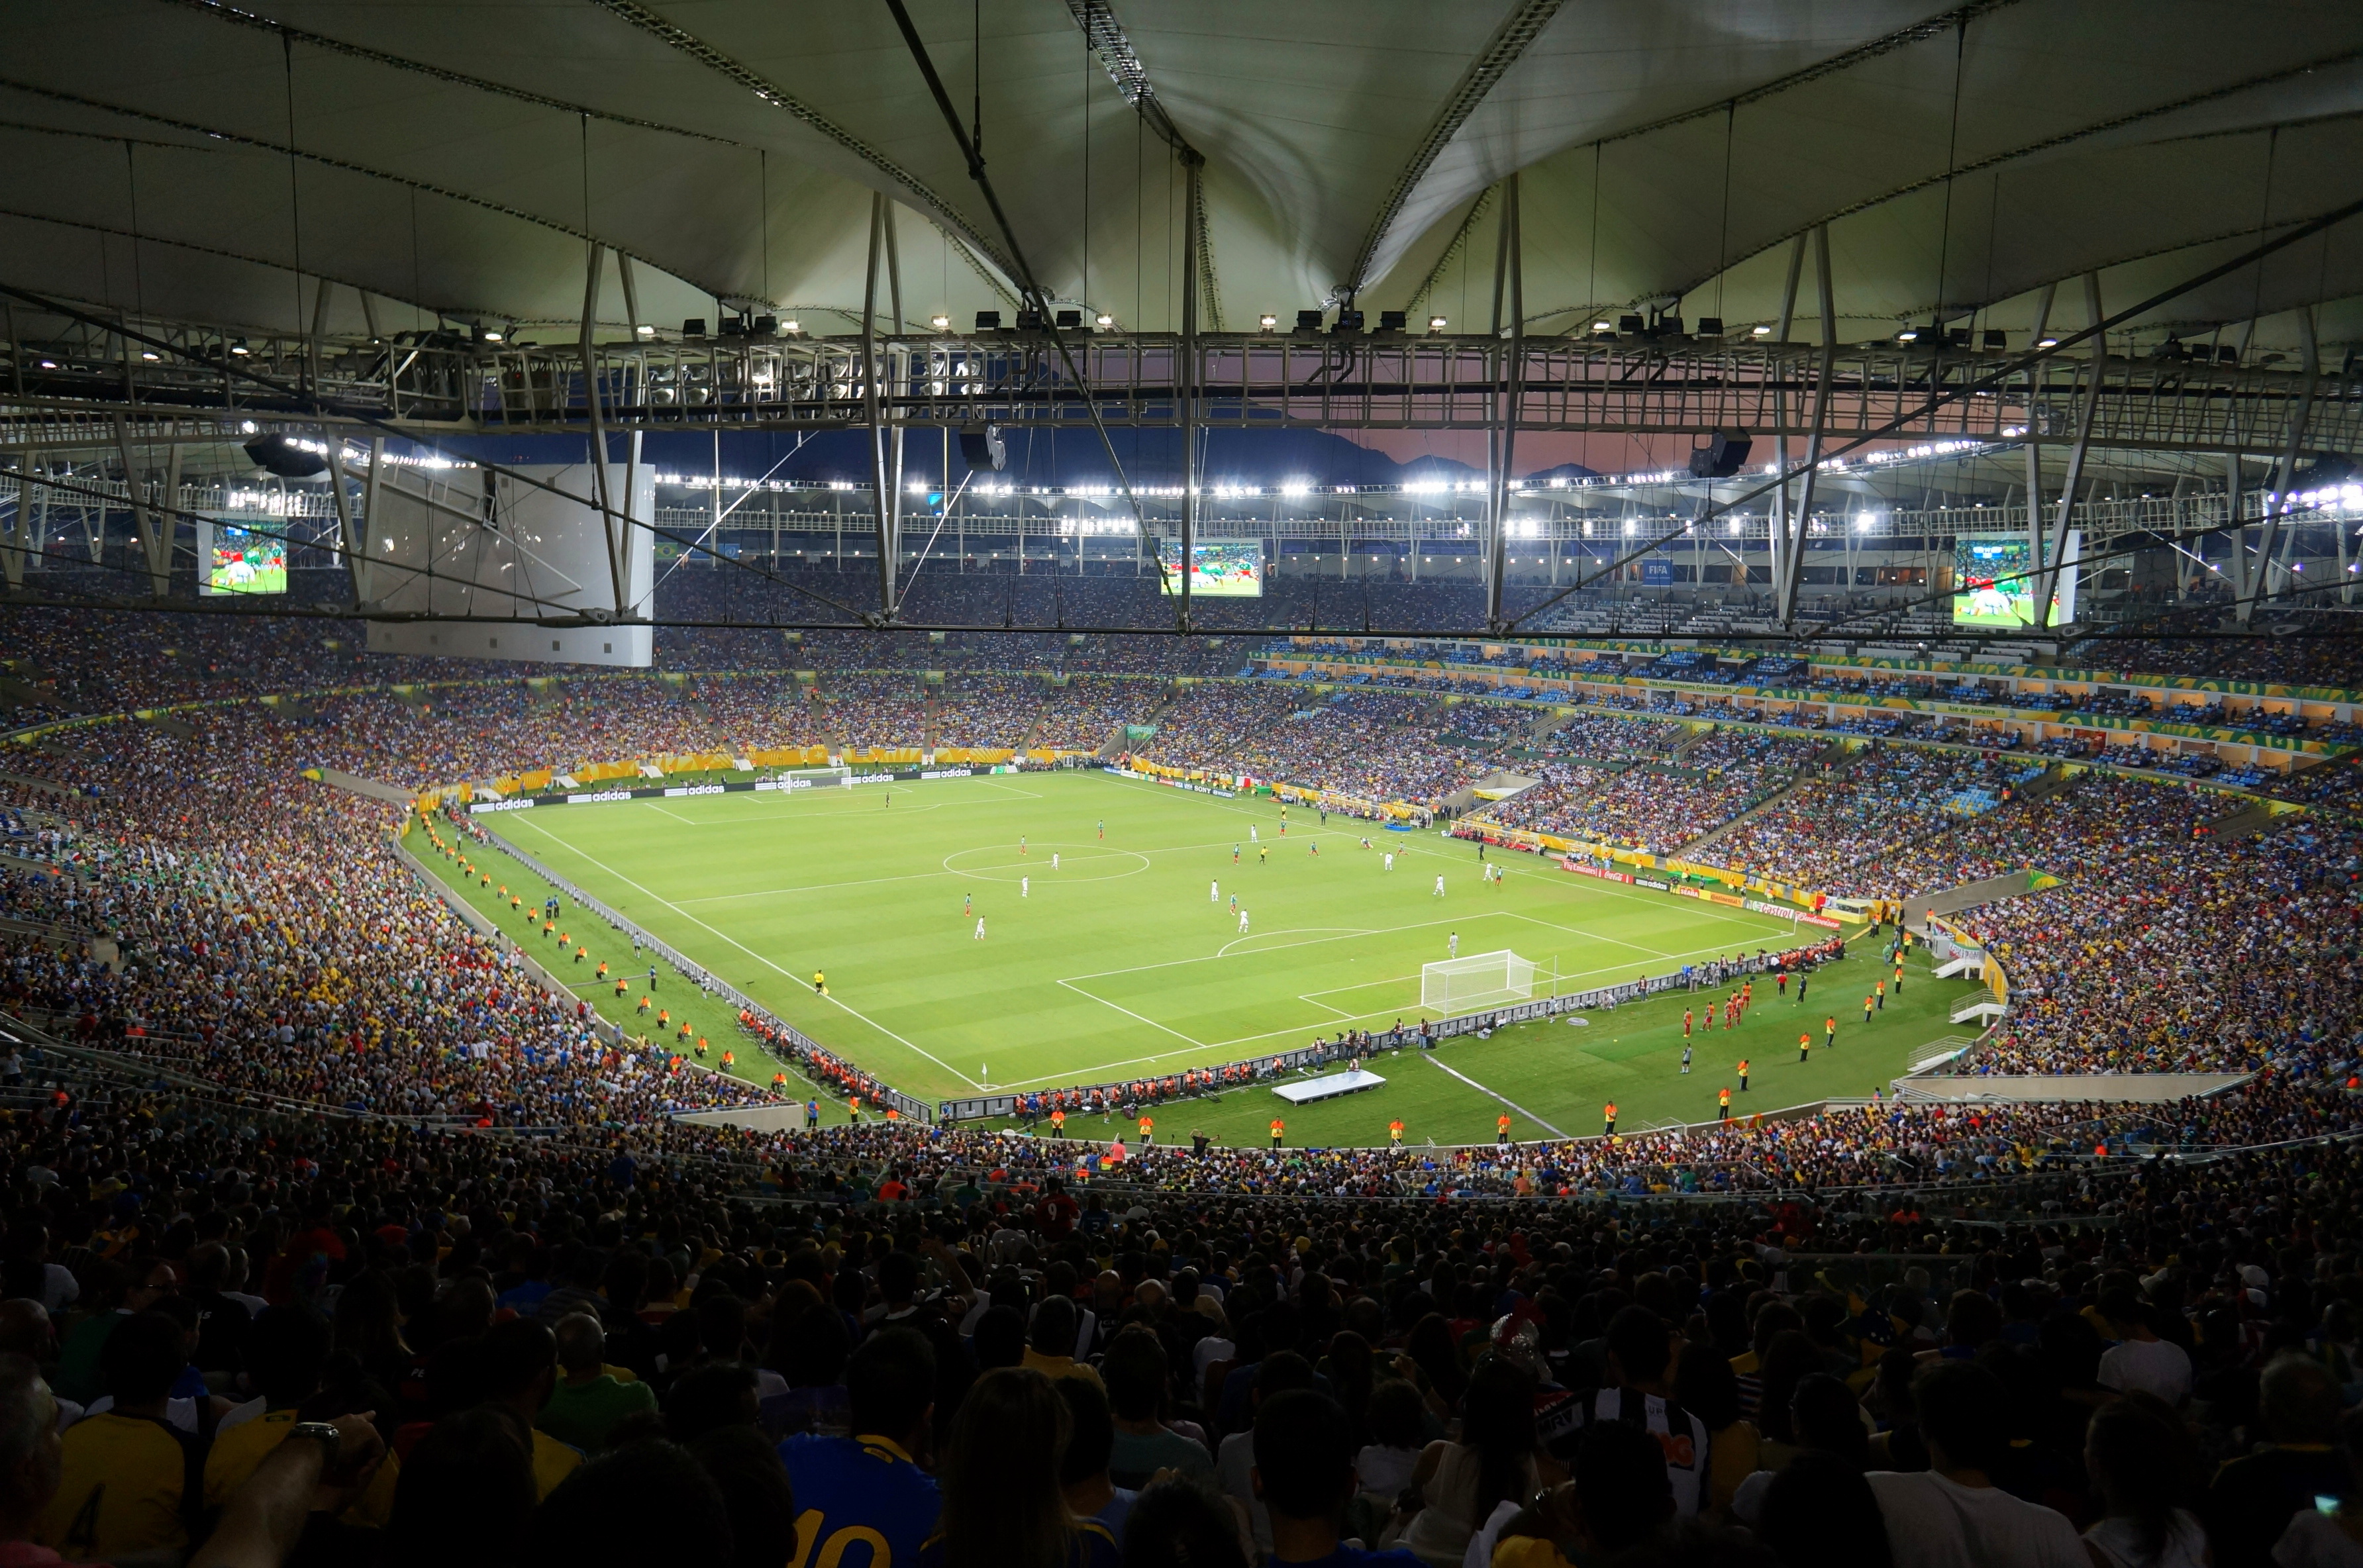 017 Maracanc3a3 Stadium Essay Example Soccer Vs Football Compare And Excellent Contrast Full